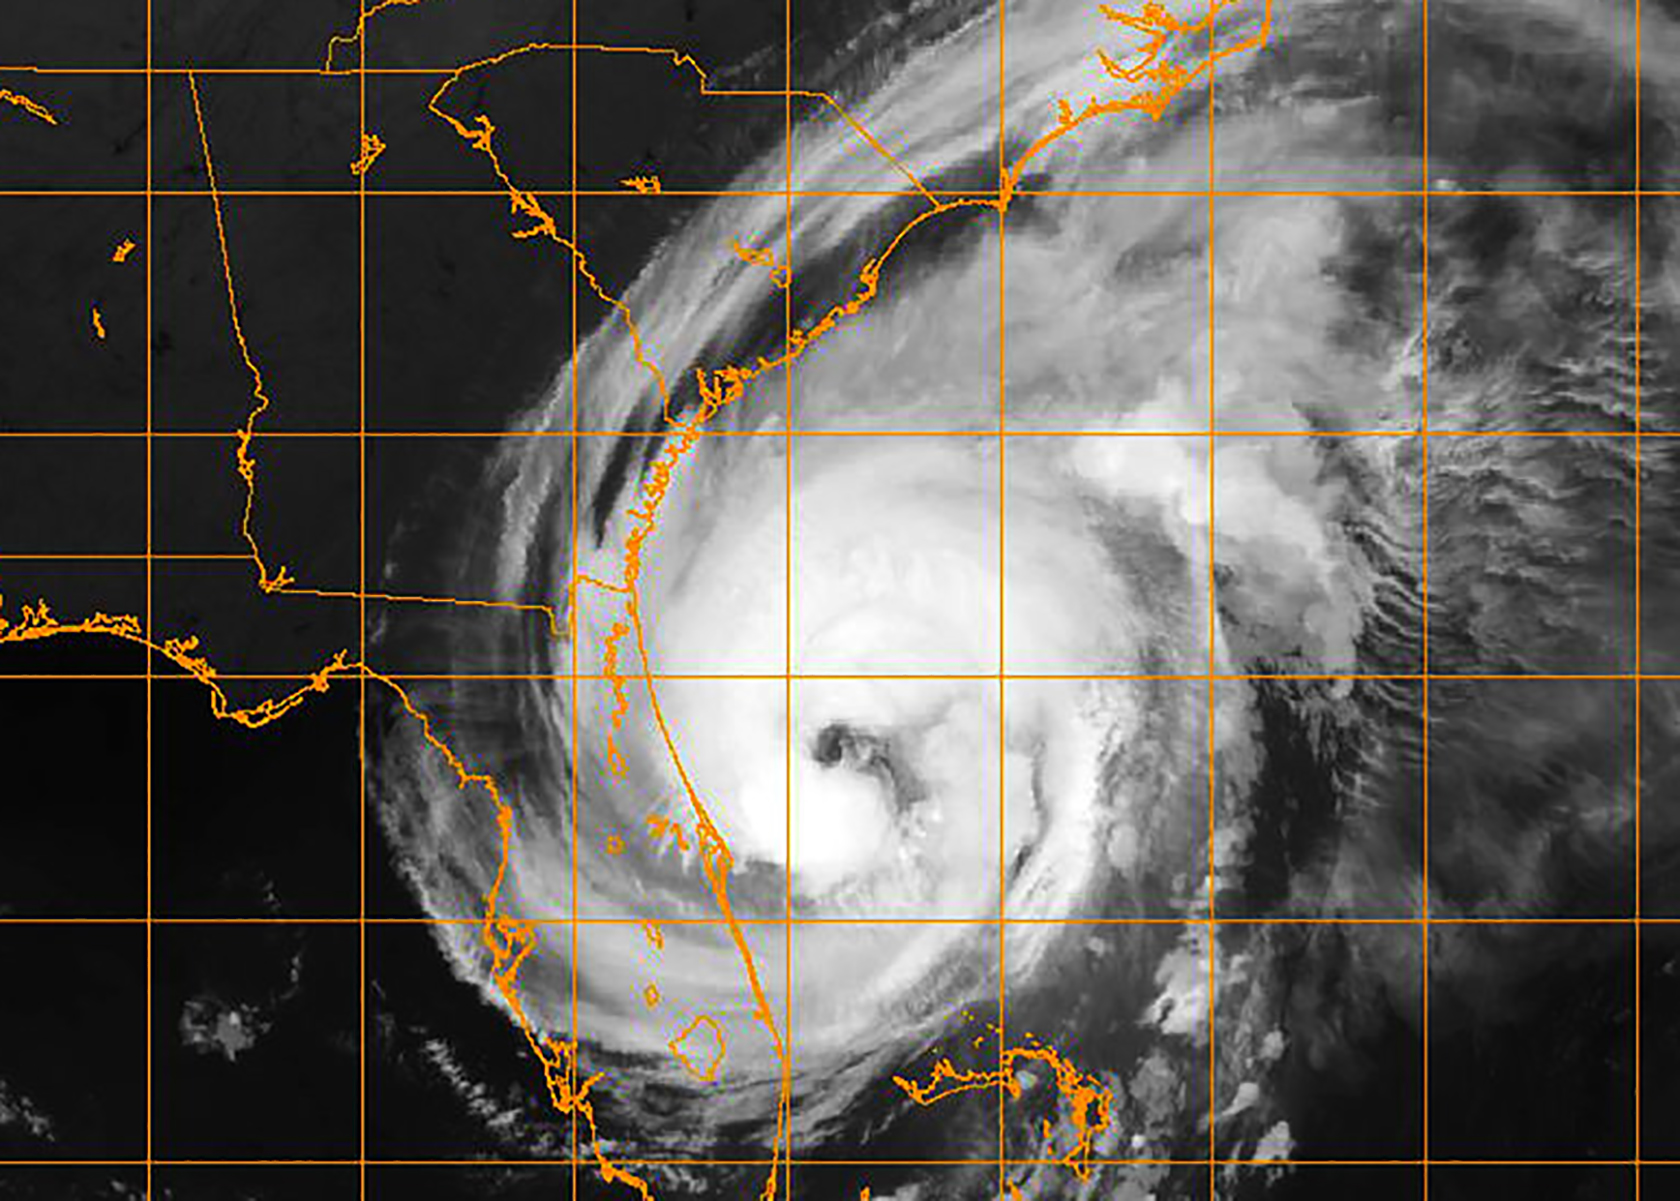 Hurricane Dorian, which at its strongest was a Category 5 hurricane, dropped to a Category 3 storm as it brushed the South Carolina coast, with the eye about 50 miles from Charleston. The storm pelted the Lowcountry with more than 10 inches of rain and delivered wind gusts approaching 100 mph causing flooding and power outages. (U.S. Navy photo via Naval Research Laboratory)